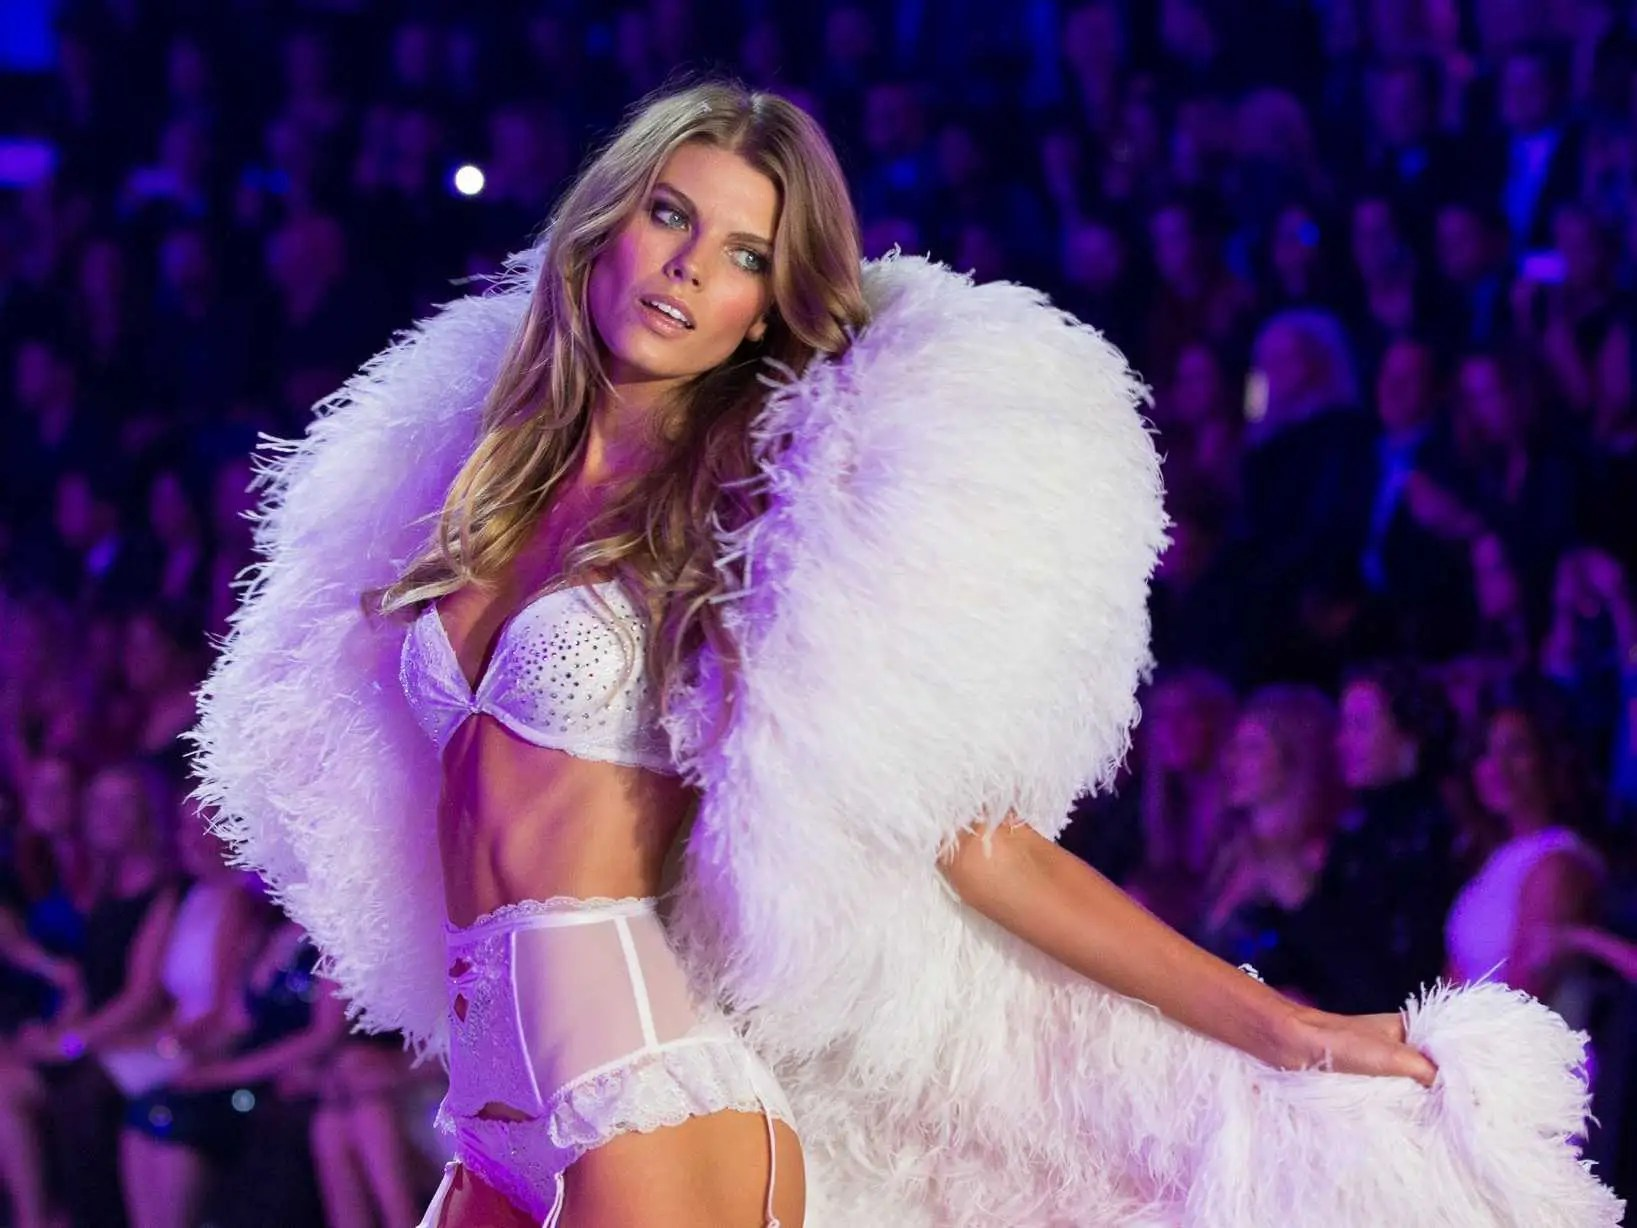 https://i2.wp.com/static4.businessinsider.com/image/528434eceab8eae678dda6f5/51-photos-from-the-2013-victorias-secret-fashion-show.jpg